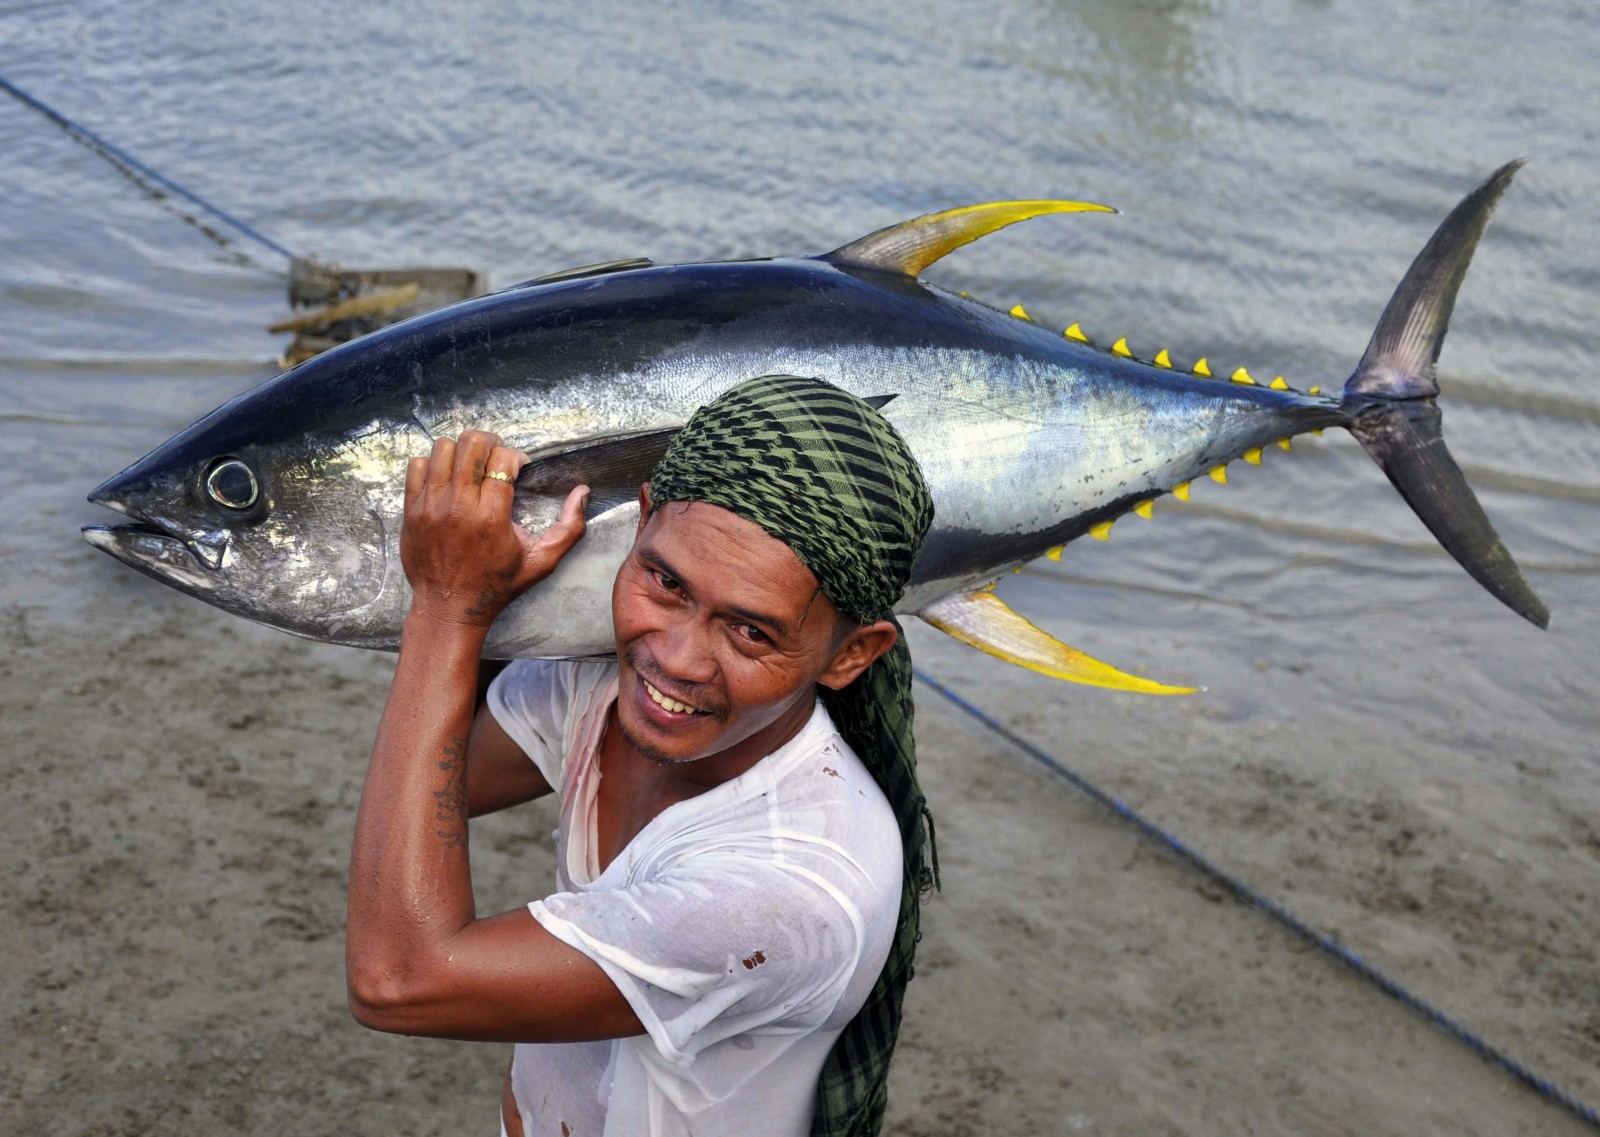 unsustainable fishing has caused yellowfin tuna catches to drop by 75%